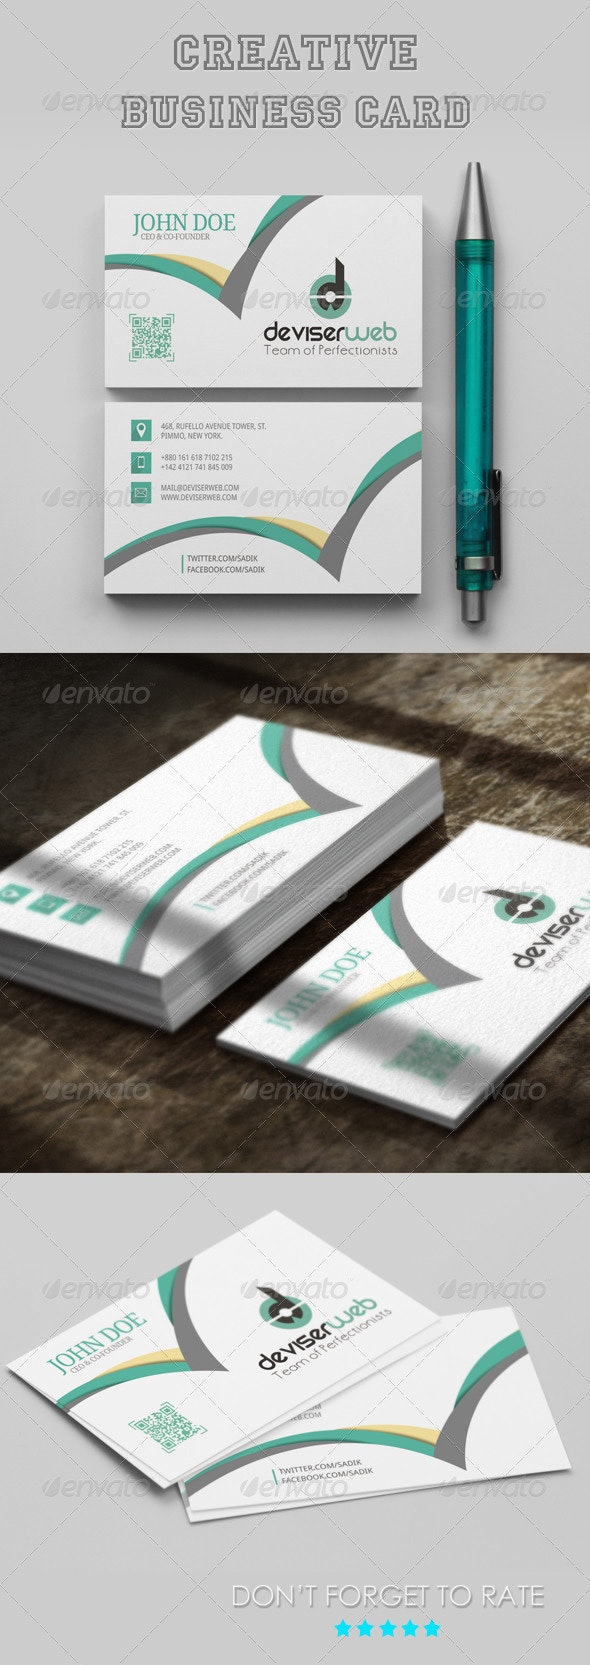 Creative Business Card Template - Business Cards Print Templates